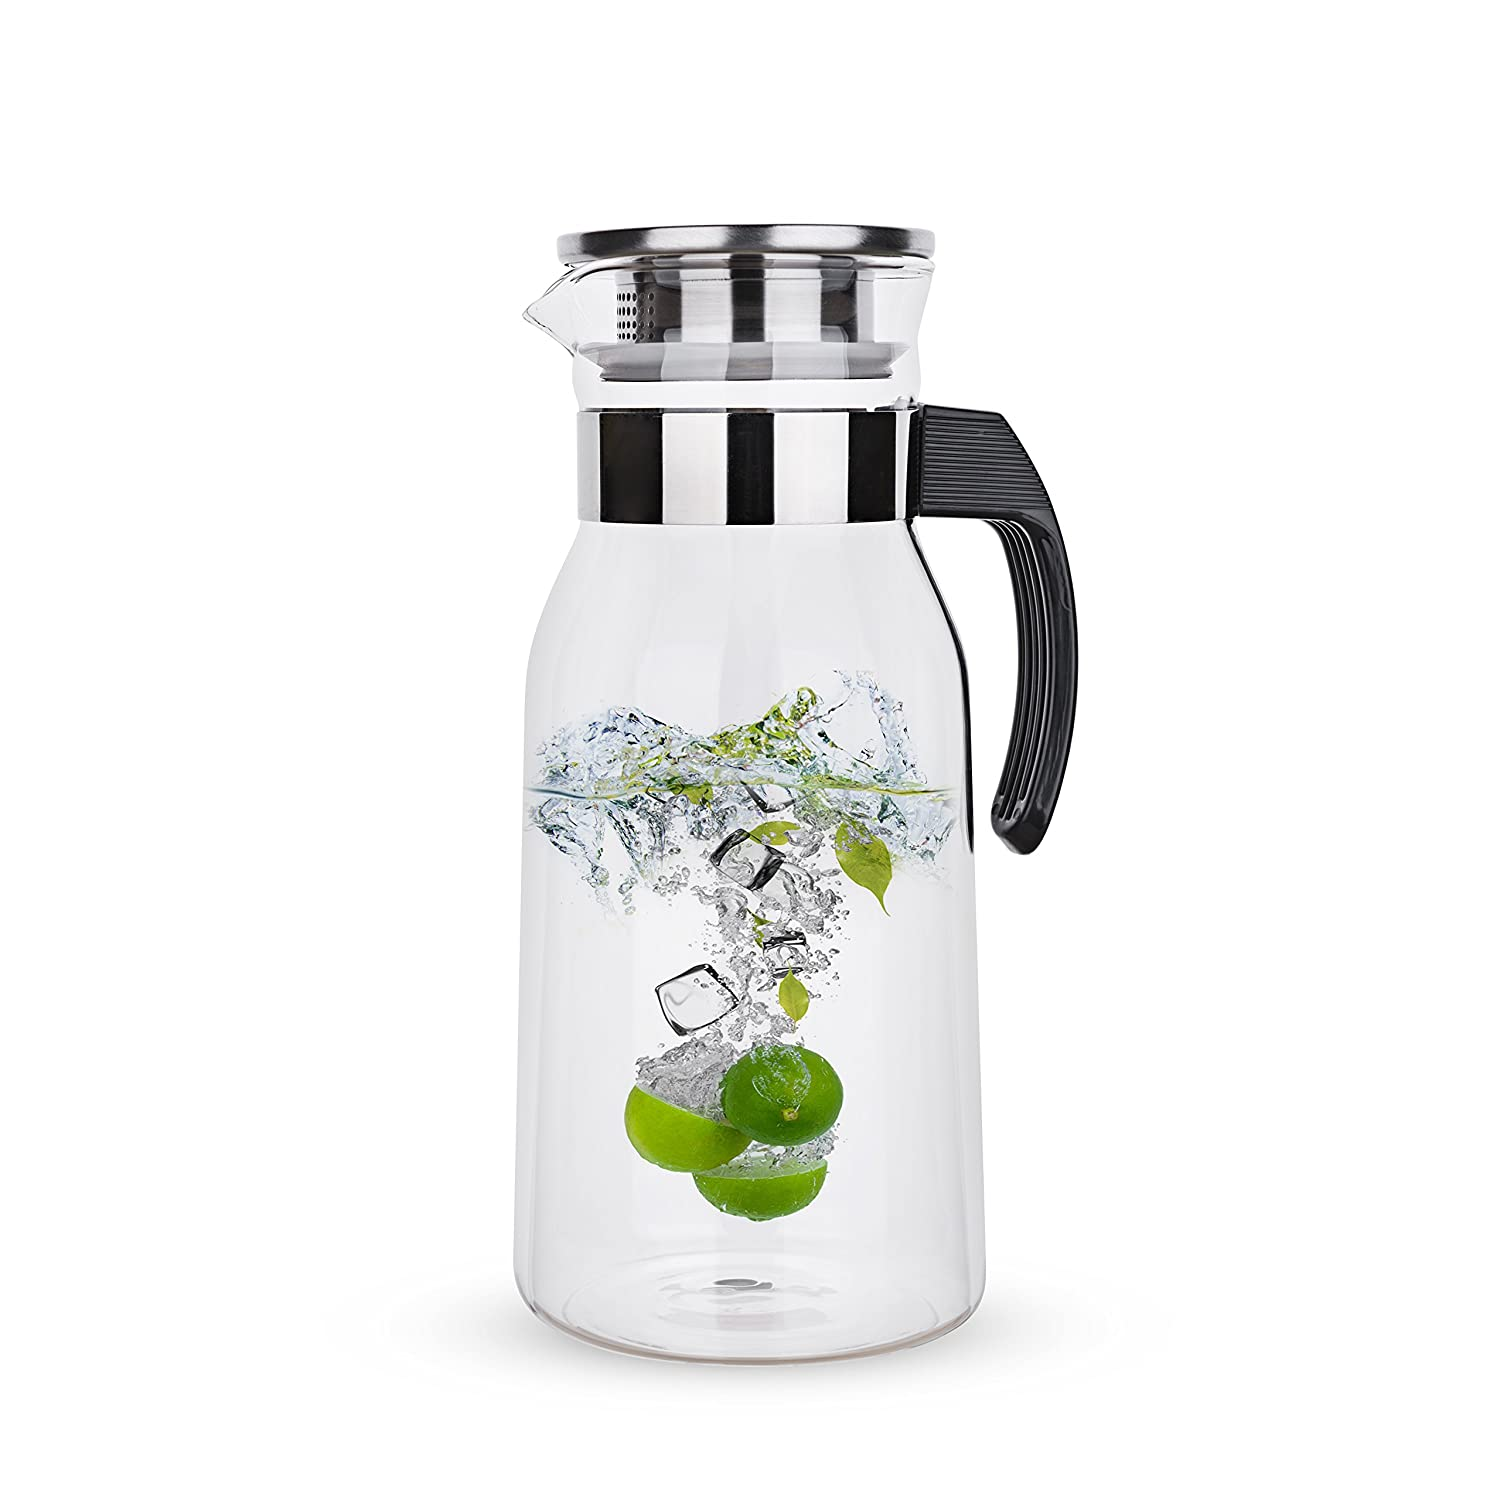 Handmade Water Jug for Hot//Cold Water Black Handle 65 Ounces Glass Pitcher with Handle and Lid Ice Tea and Juice Beverage